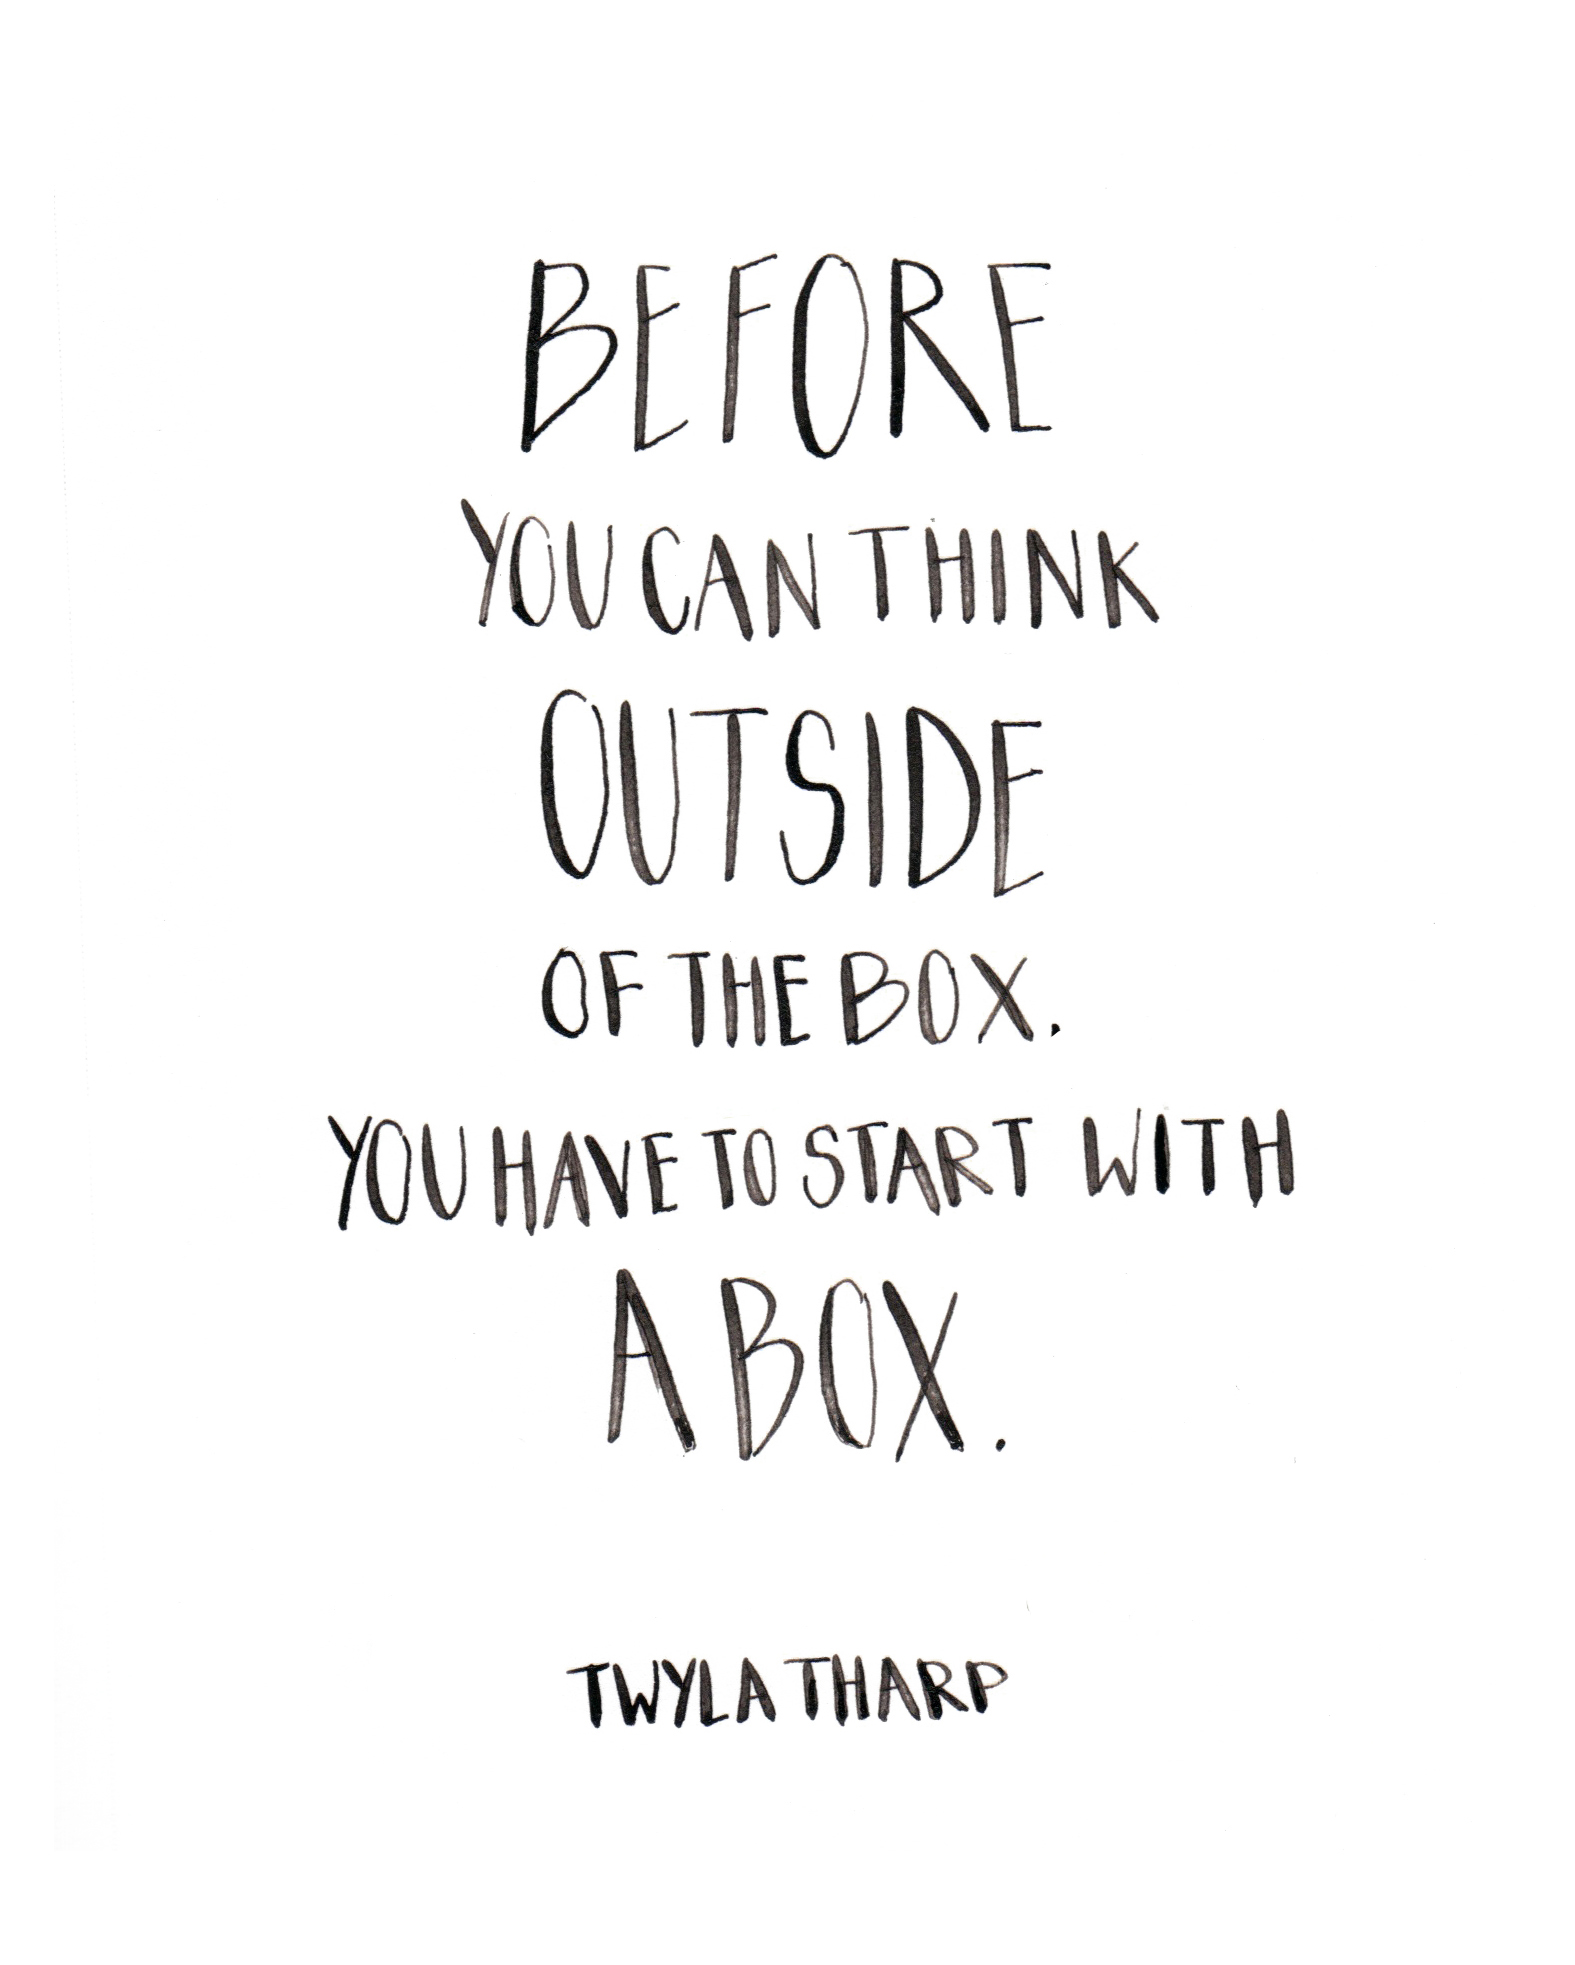 Before you can think outside of the box, you have to start with a box. Twyla Tharp. Custom Type by Alicia Carvalho | www.alicia-carvalho.com